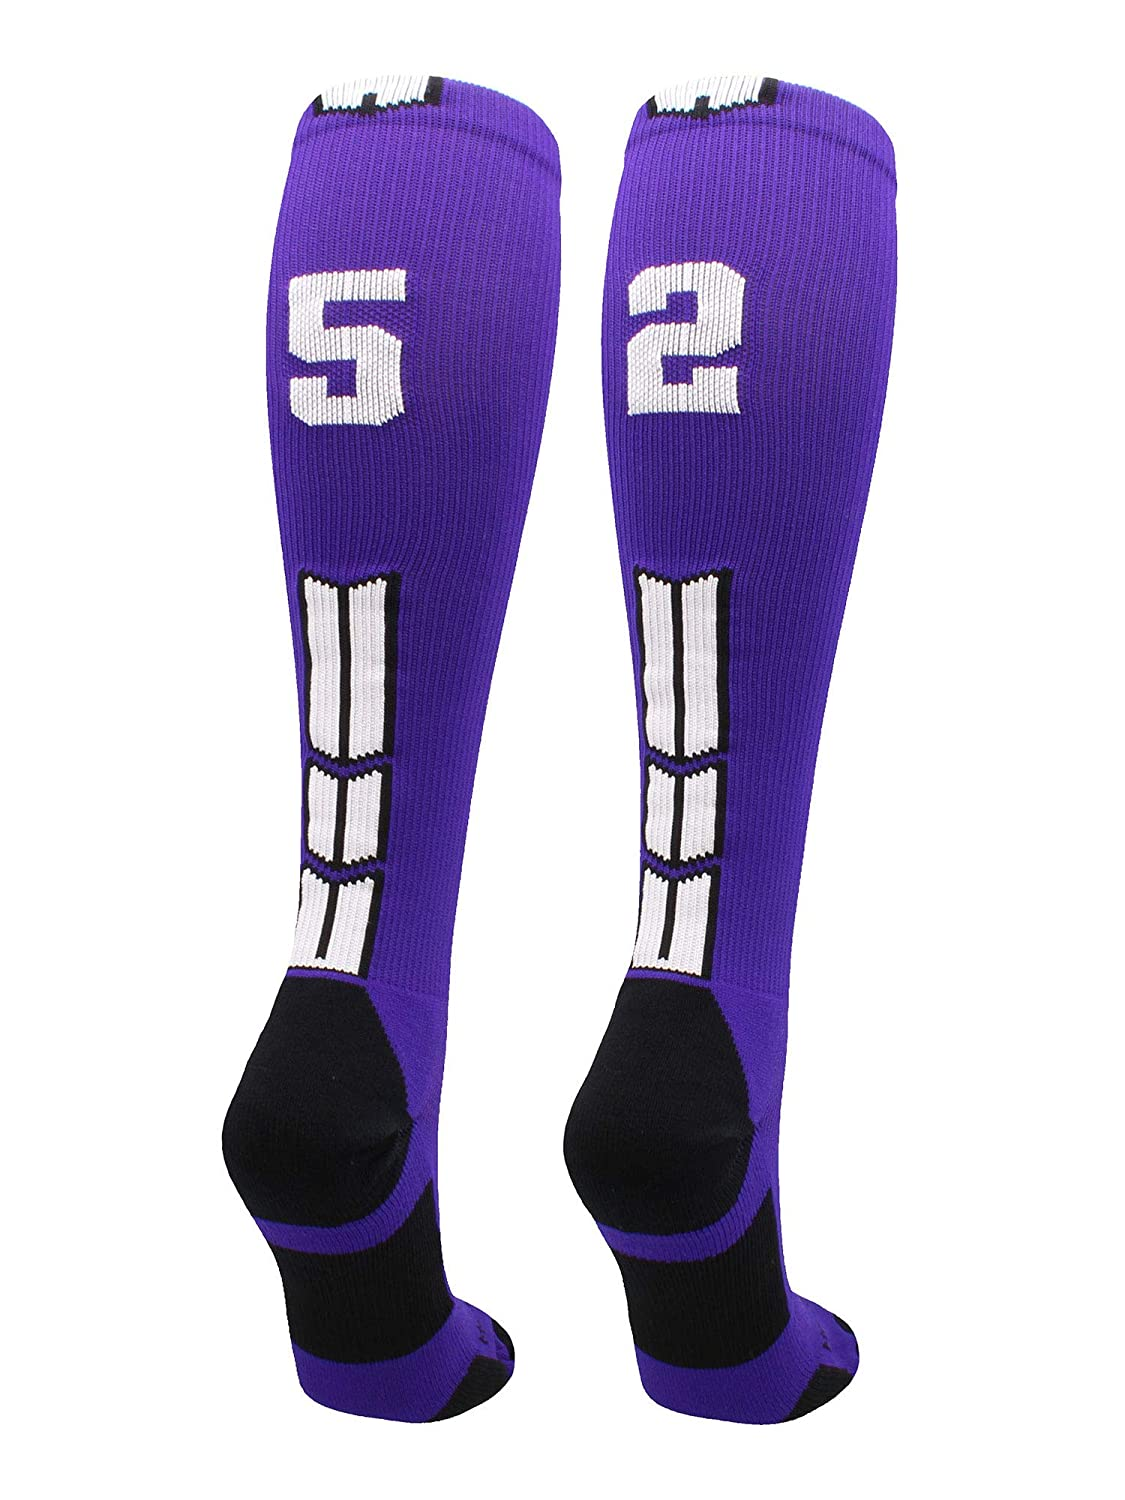 Player Id Jersey Number Socks Over the Calf Length Purple and White MadSportsStuff